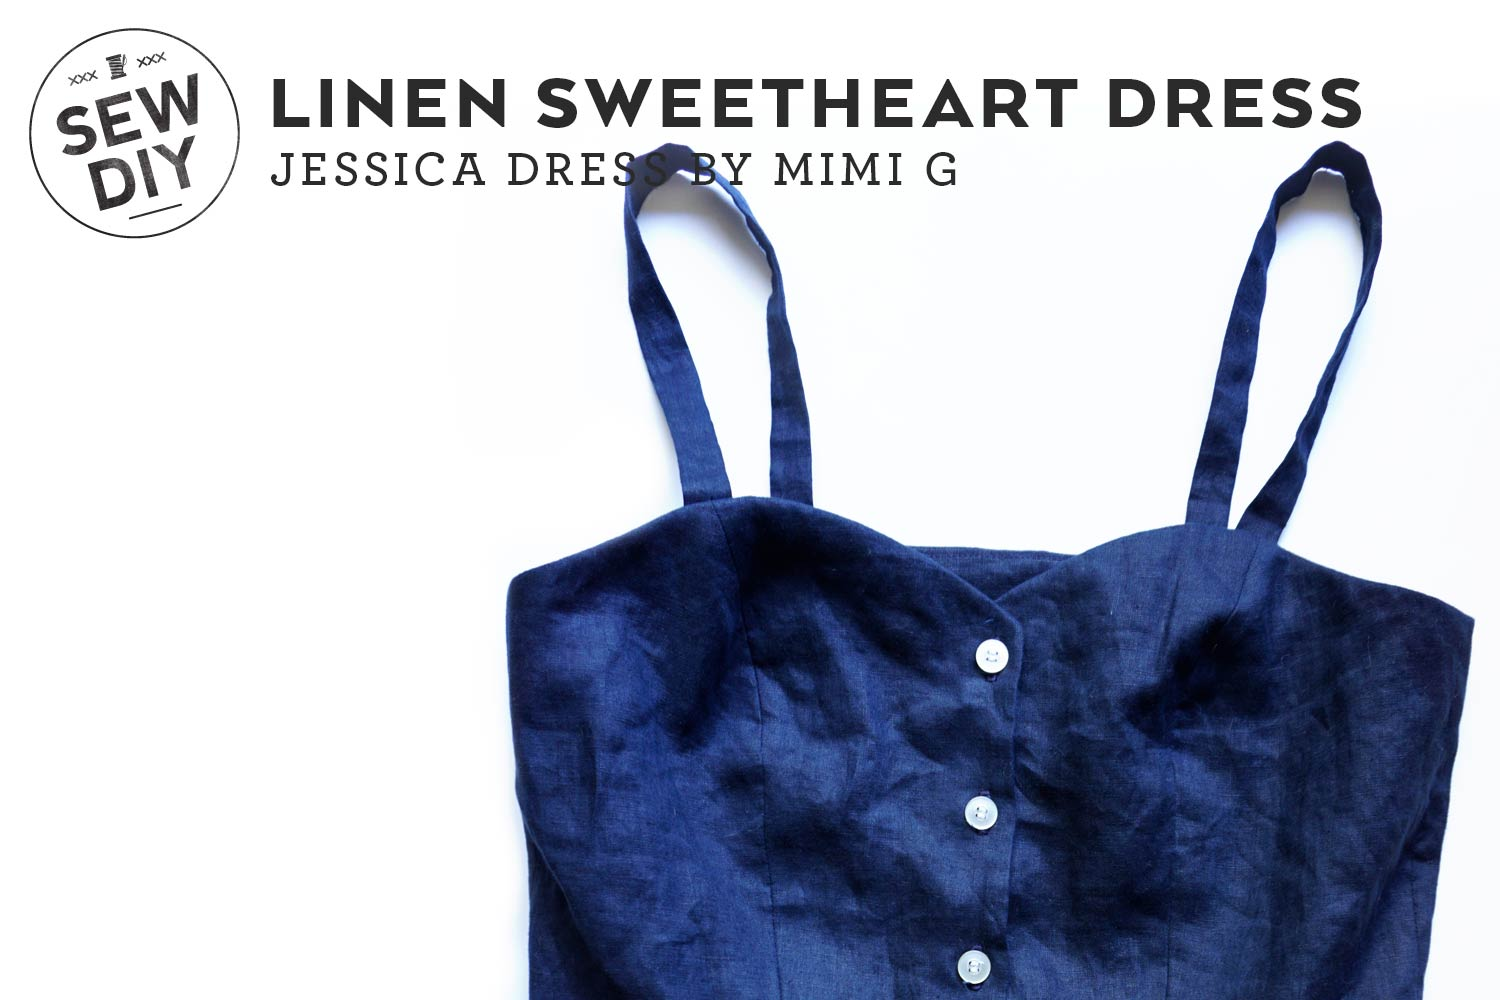 DIY Sweetheart Dress –Review of the Jessica Dress by Mimi G | Sew DIY